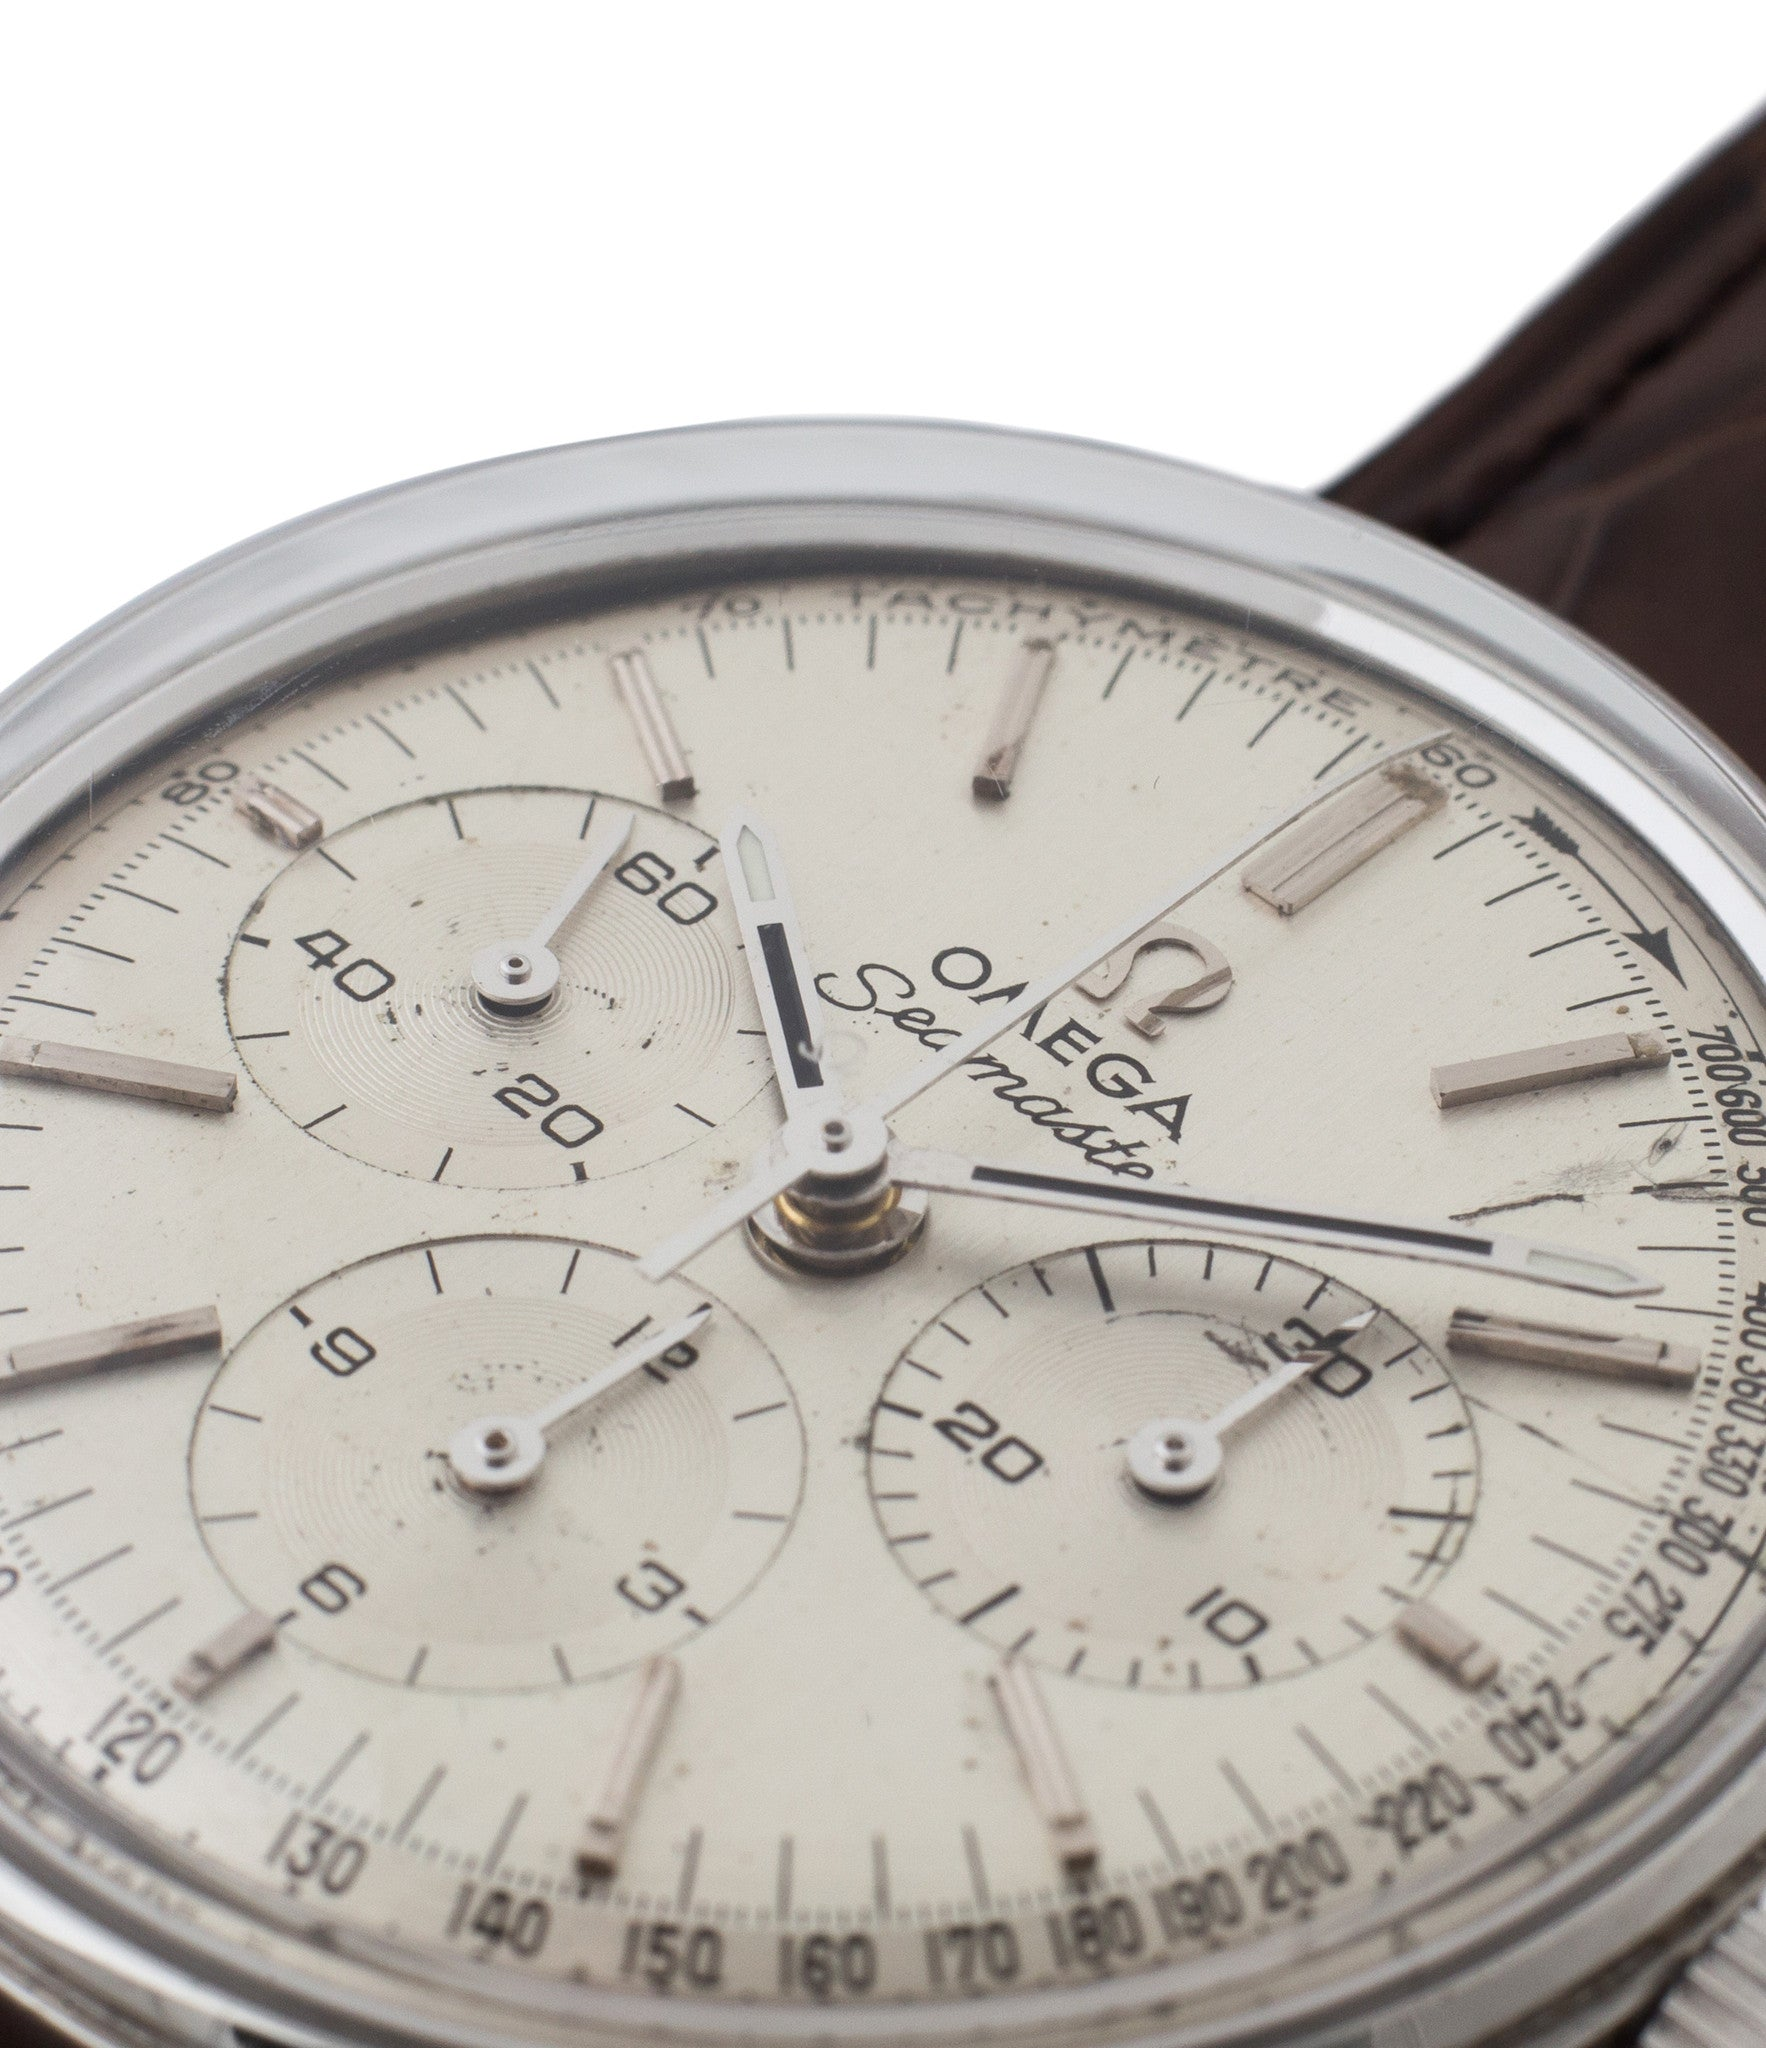 buy vintage Omega Seamaster 150.001 Cal. 321 chronograph watch with silver dial in unrestored condition for sale online at WATCH XCHANGE London with authenticity guaranteed